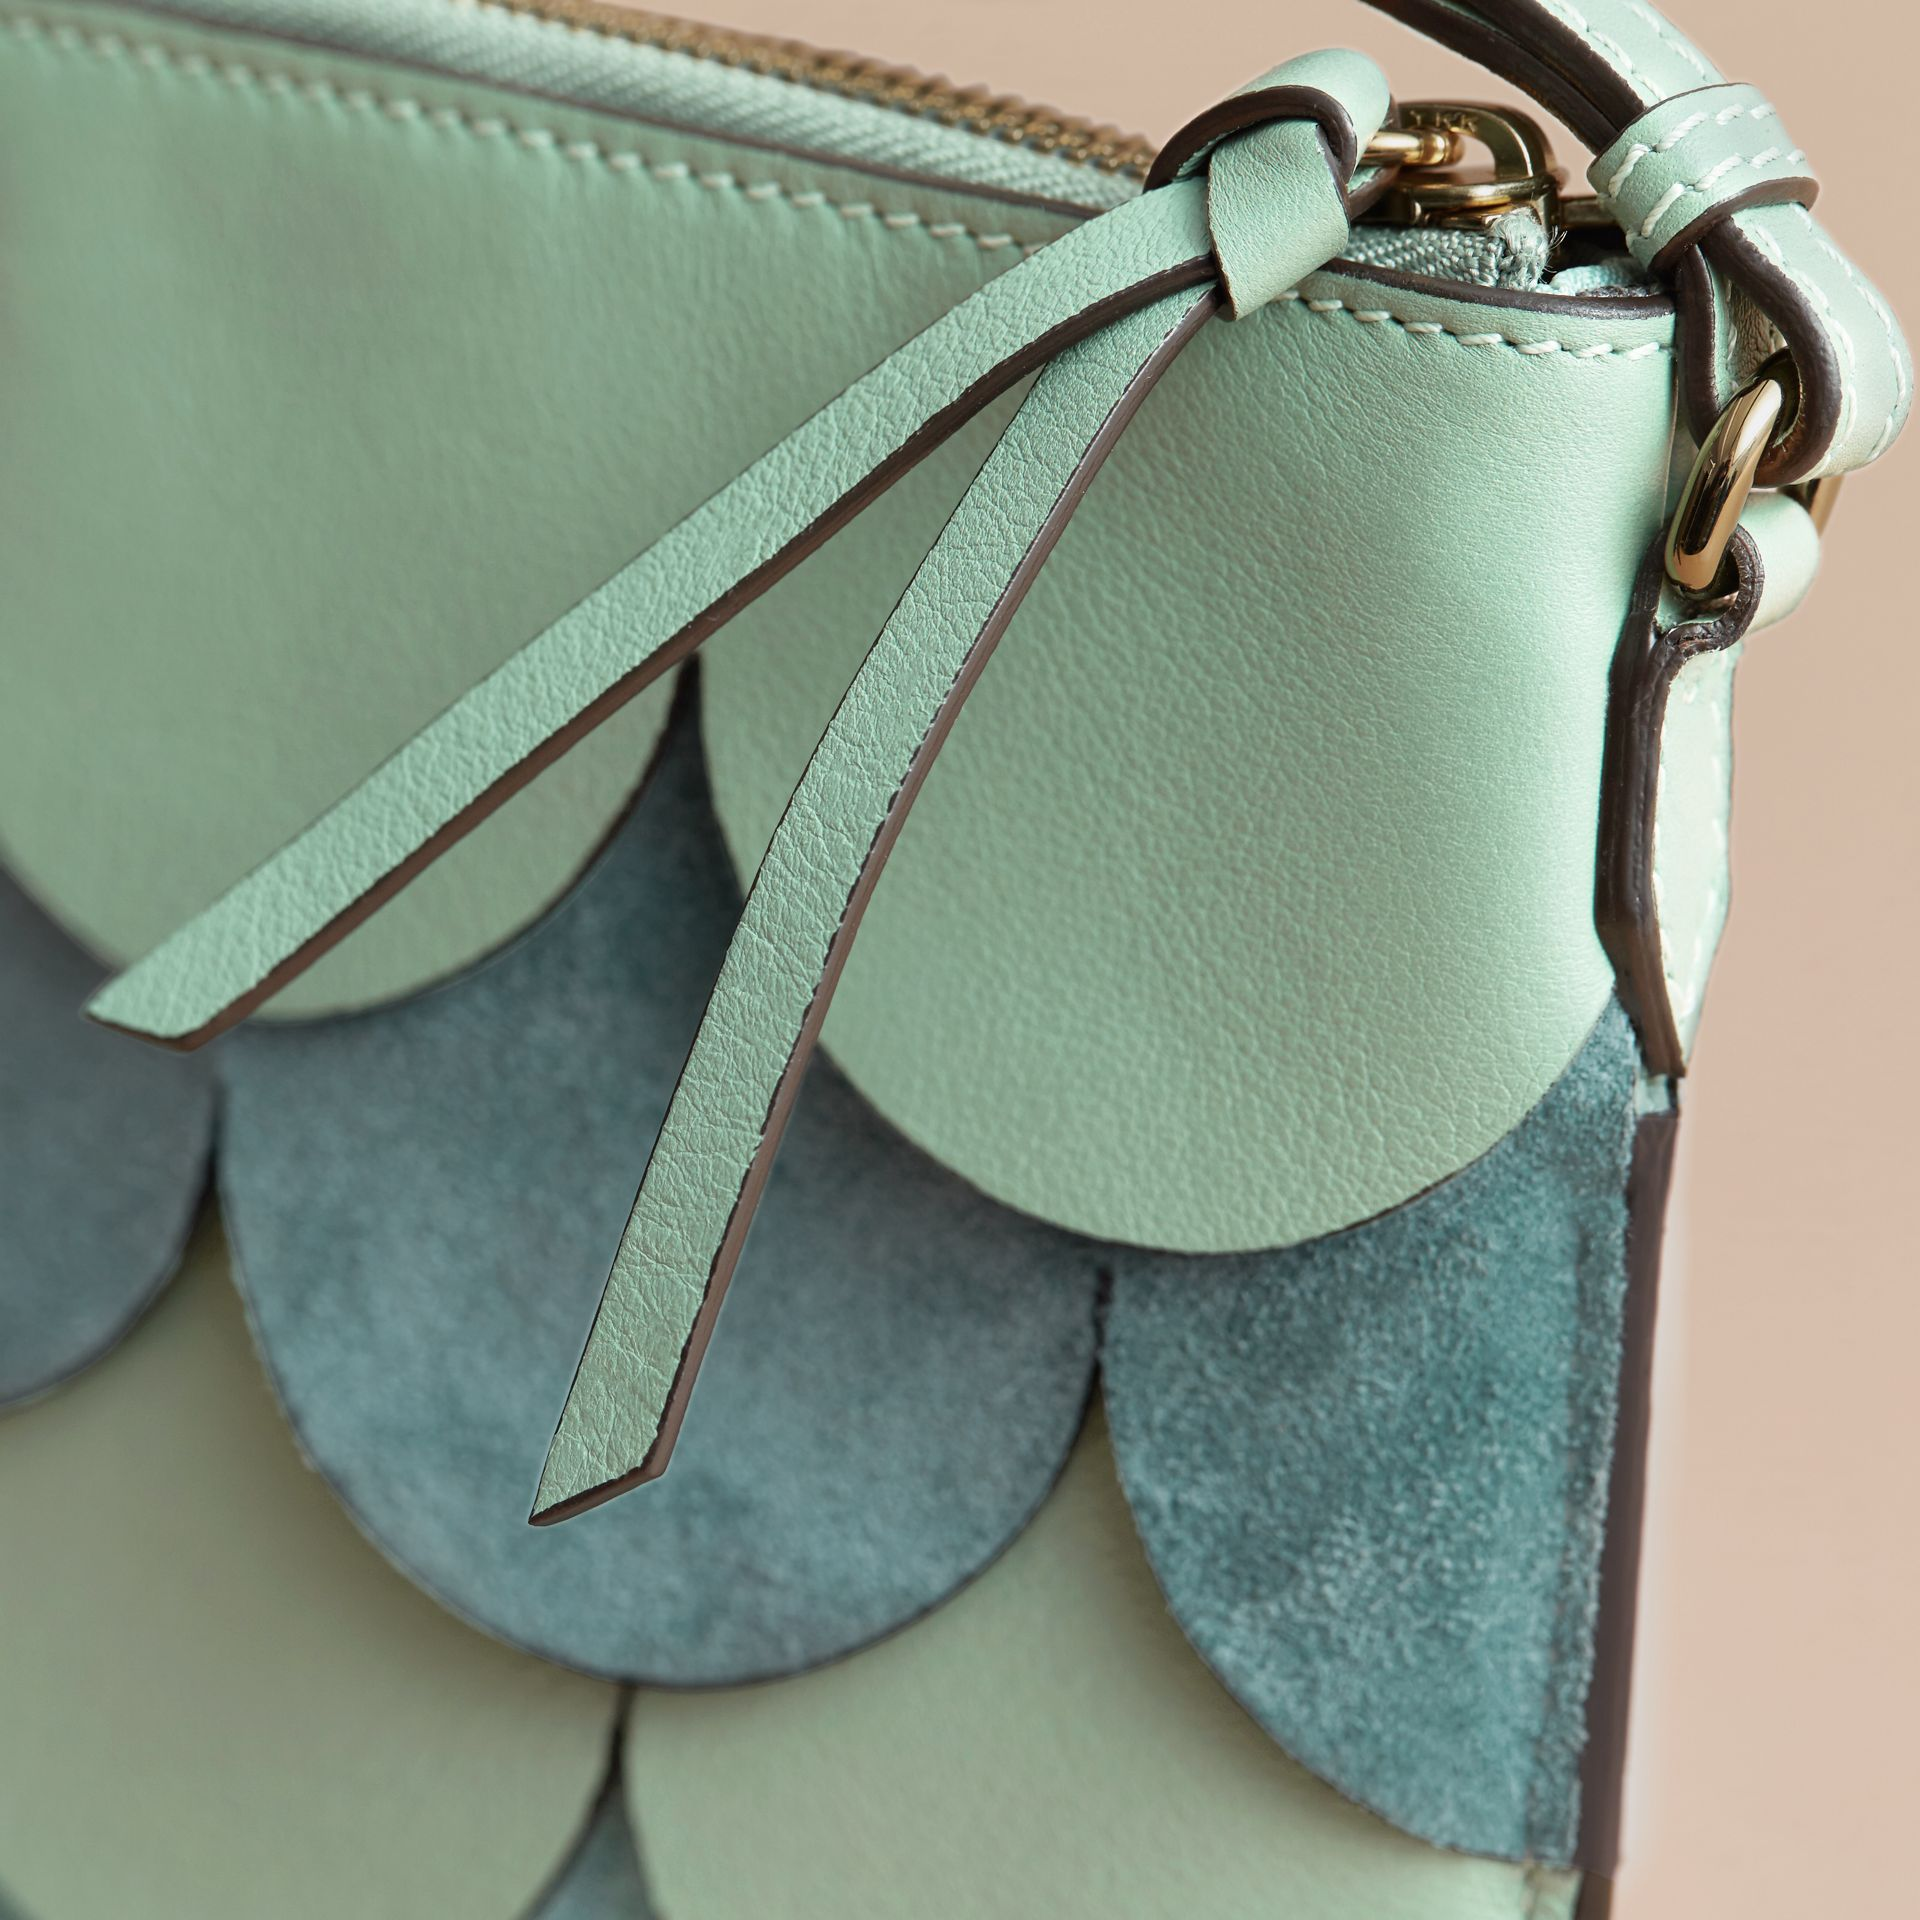 Two-tone Scalloped Leather and Suede Clutch Bag in Celadon Green - Women | Burberry - gallery image 2